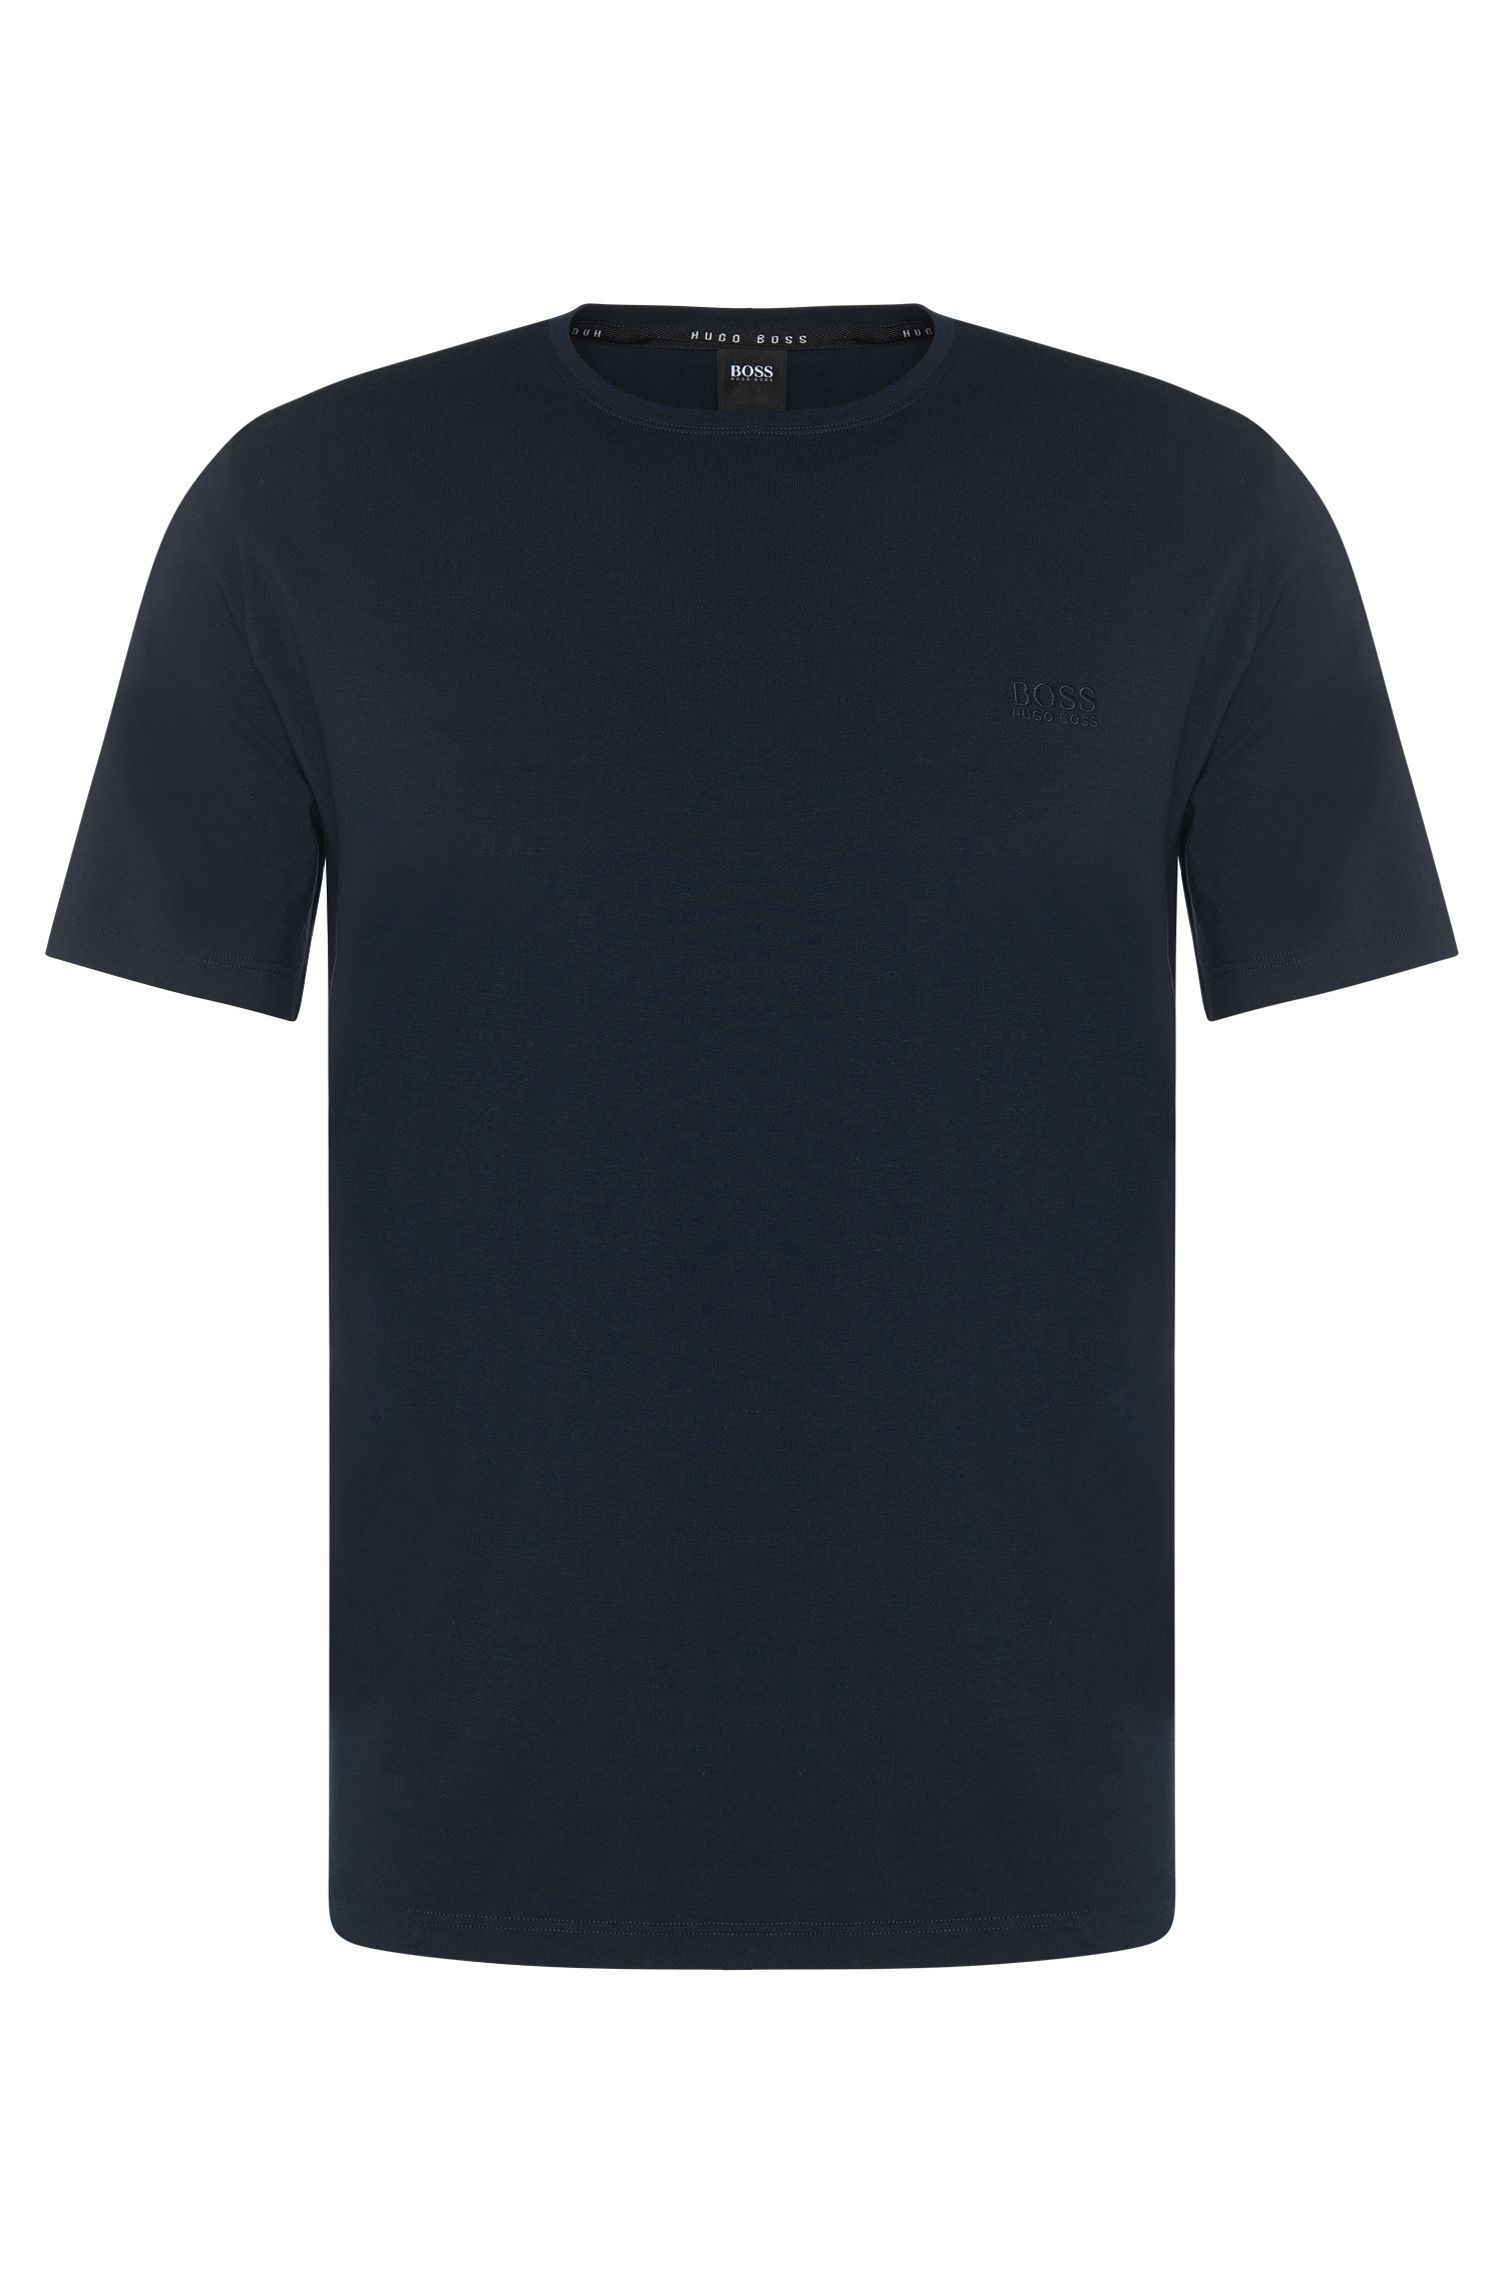 Regular-fit loungewear T-shirt in stretch cotton jersey